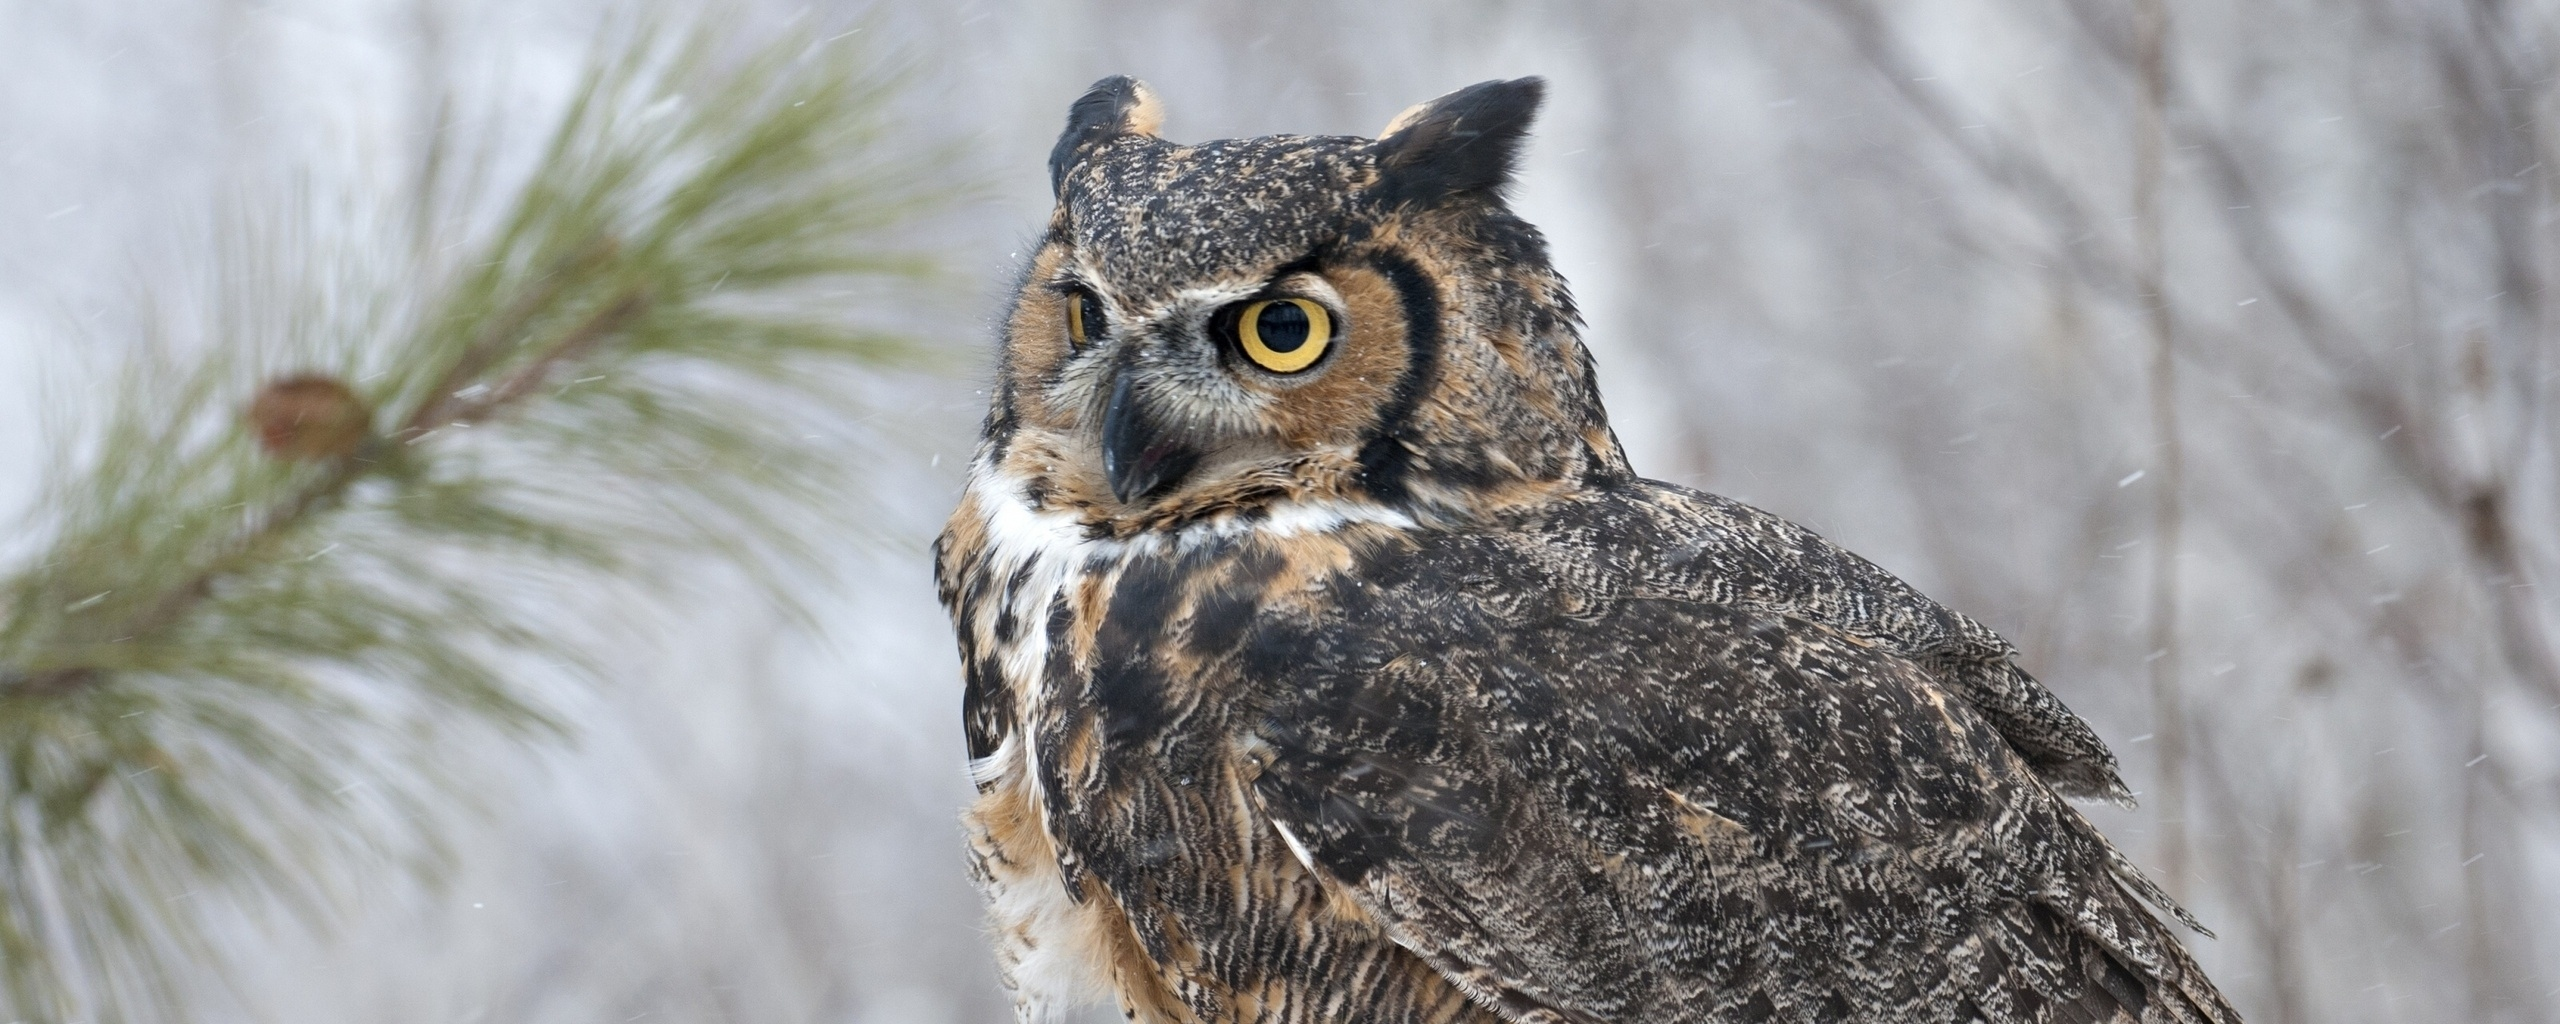 owl_bird_snow_73888_2560x1024